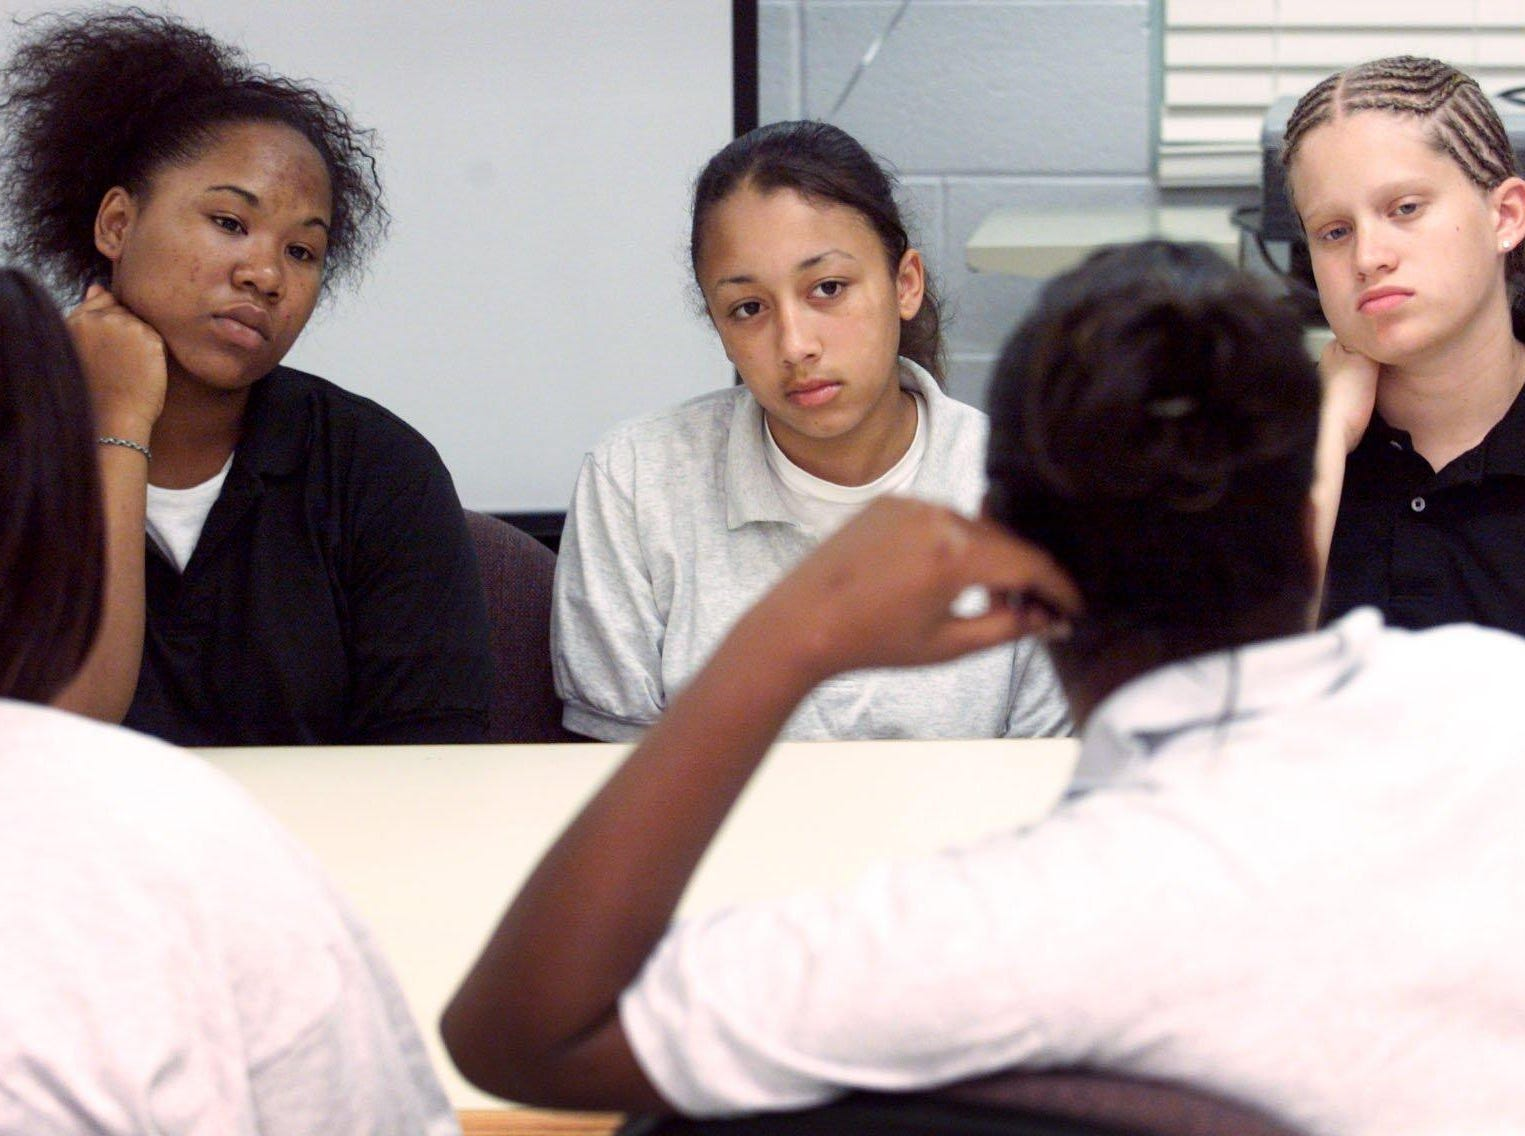 Vanessa Terry, 15, Cyntoia Brown, 14 and Jessica Kemp, 15, (L-R) who are enrolled at Woodland Hills Youth Development Center have been impacted by a program sponsored by Senator Thelma Harper.